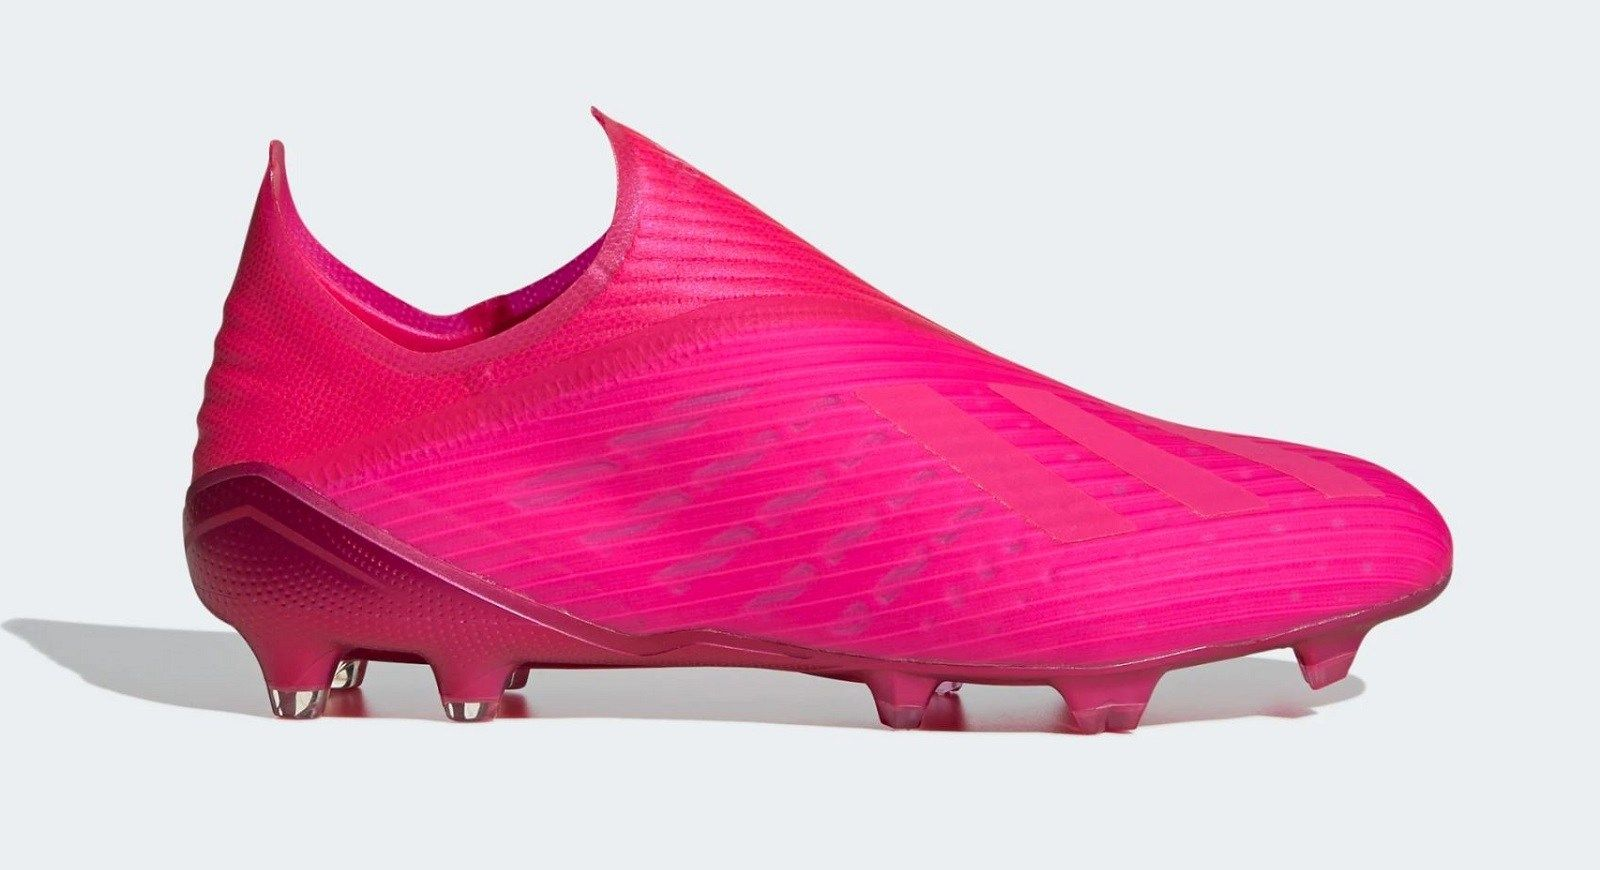 Adidas Locality Pack X19 In 2020 Football Boots Adidas Soccer Cleats